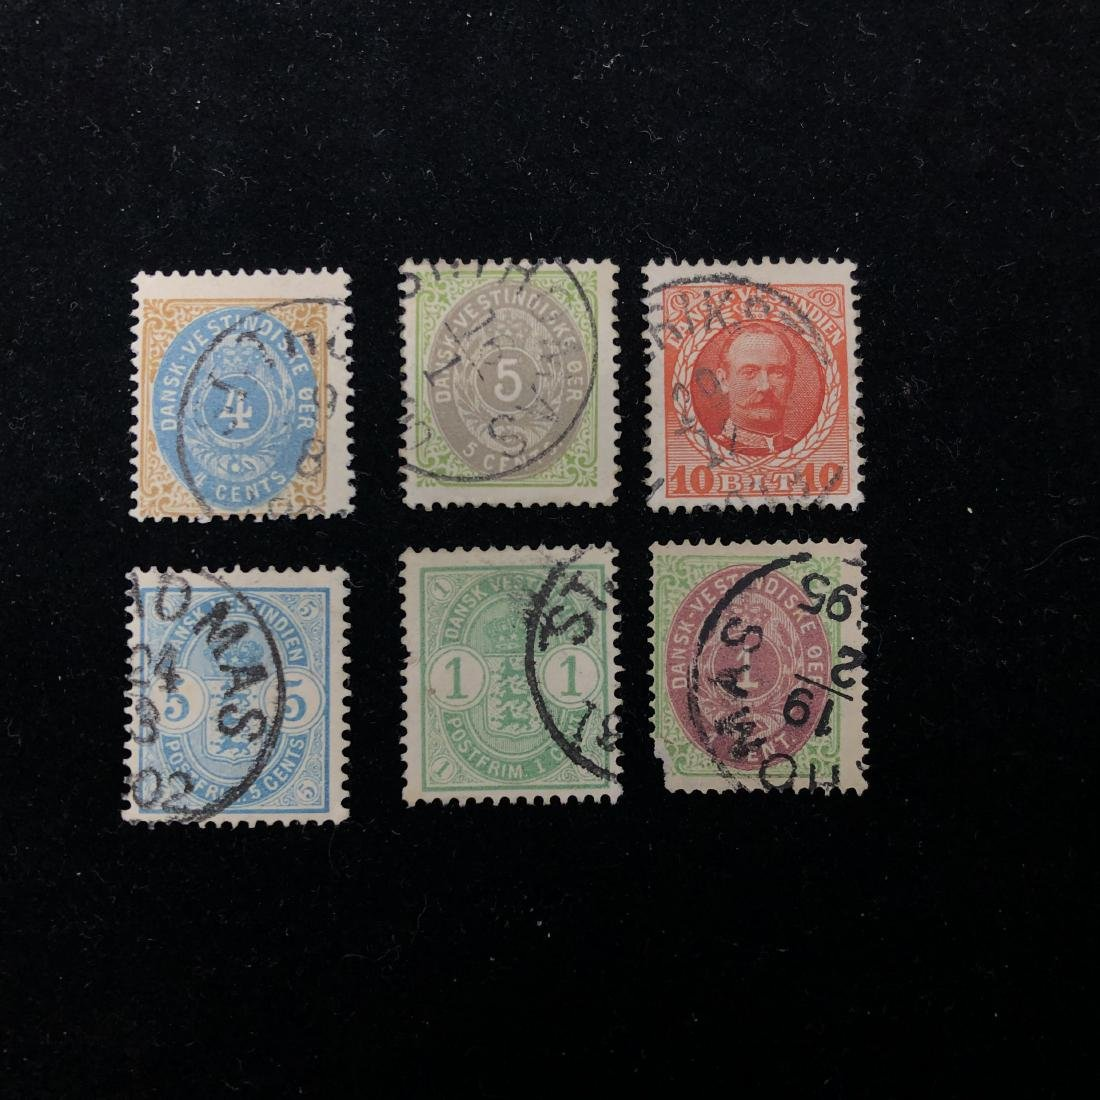 Danish West Indies Stamp Collection from 1874-1908